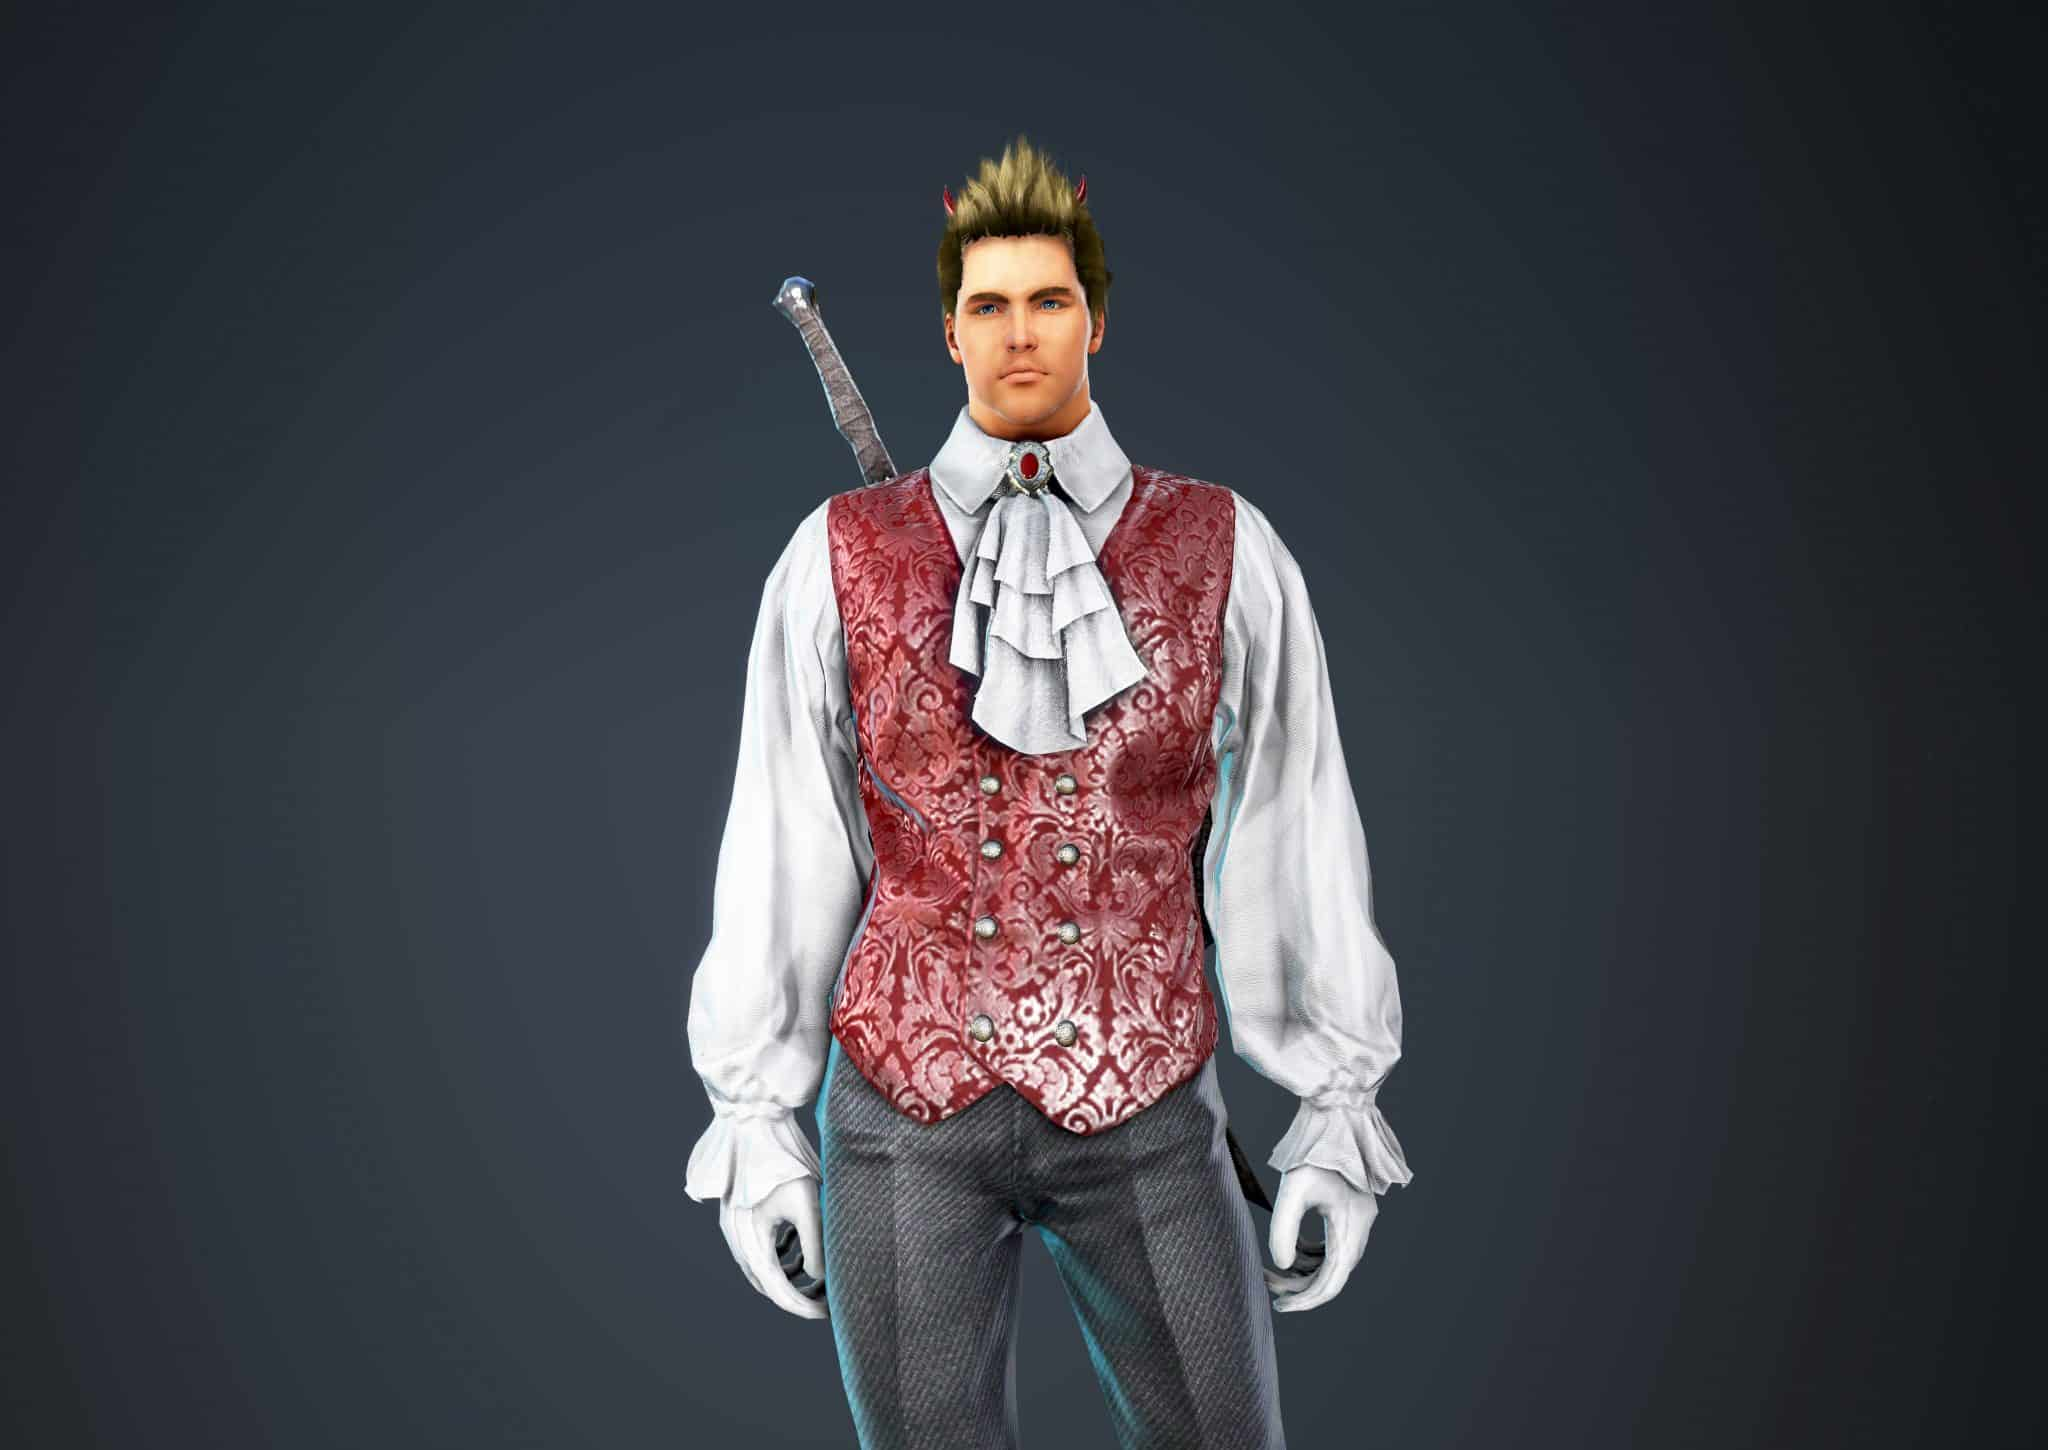 Warrior Bloody Suit, Bloody Outfit Set, Halloween 2018, Black Desert Online